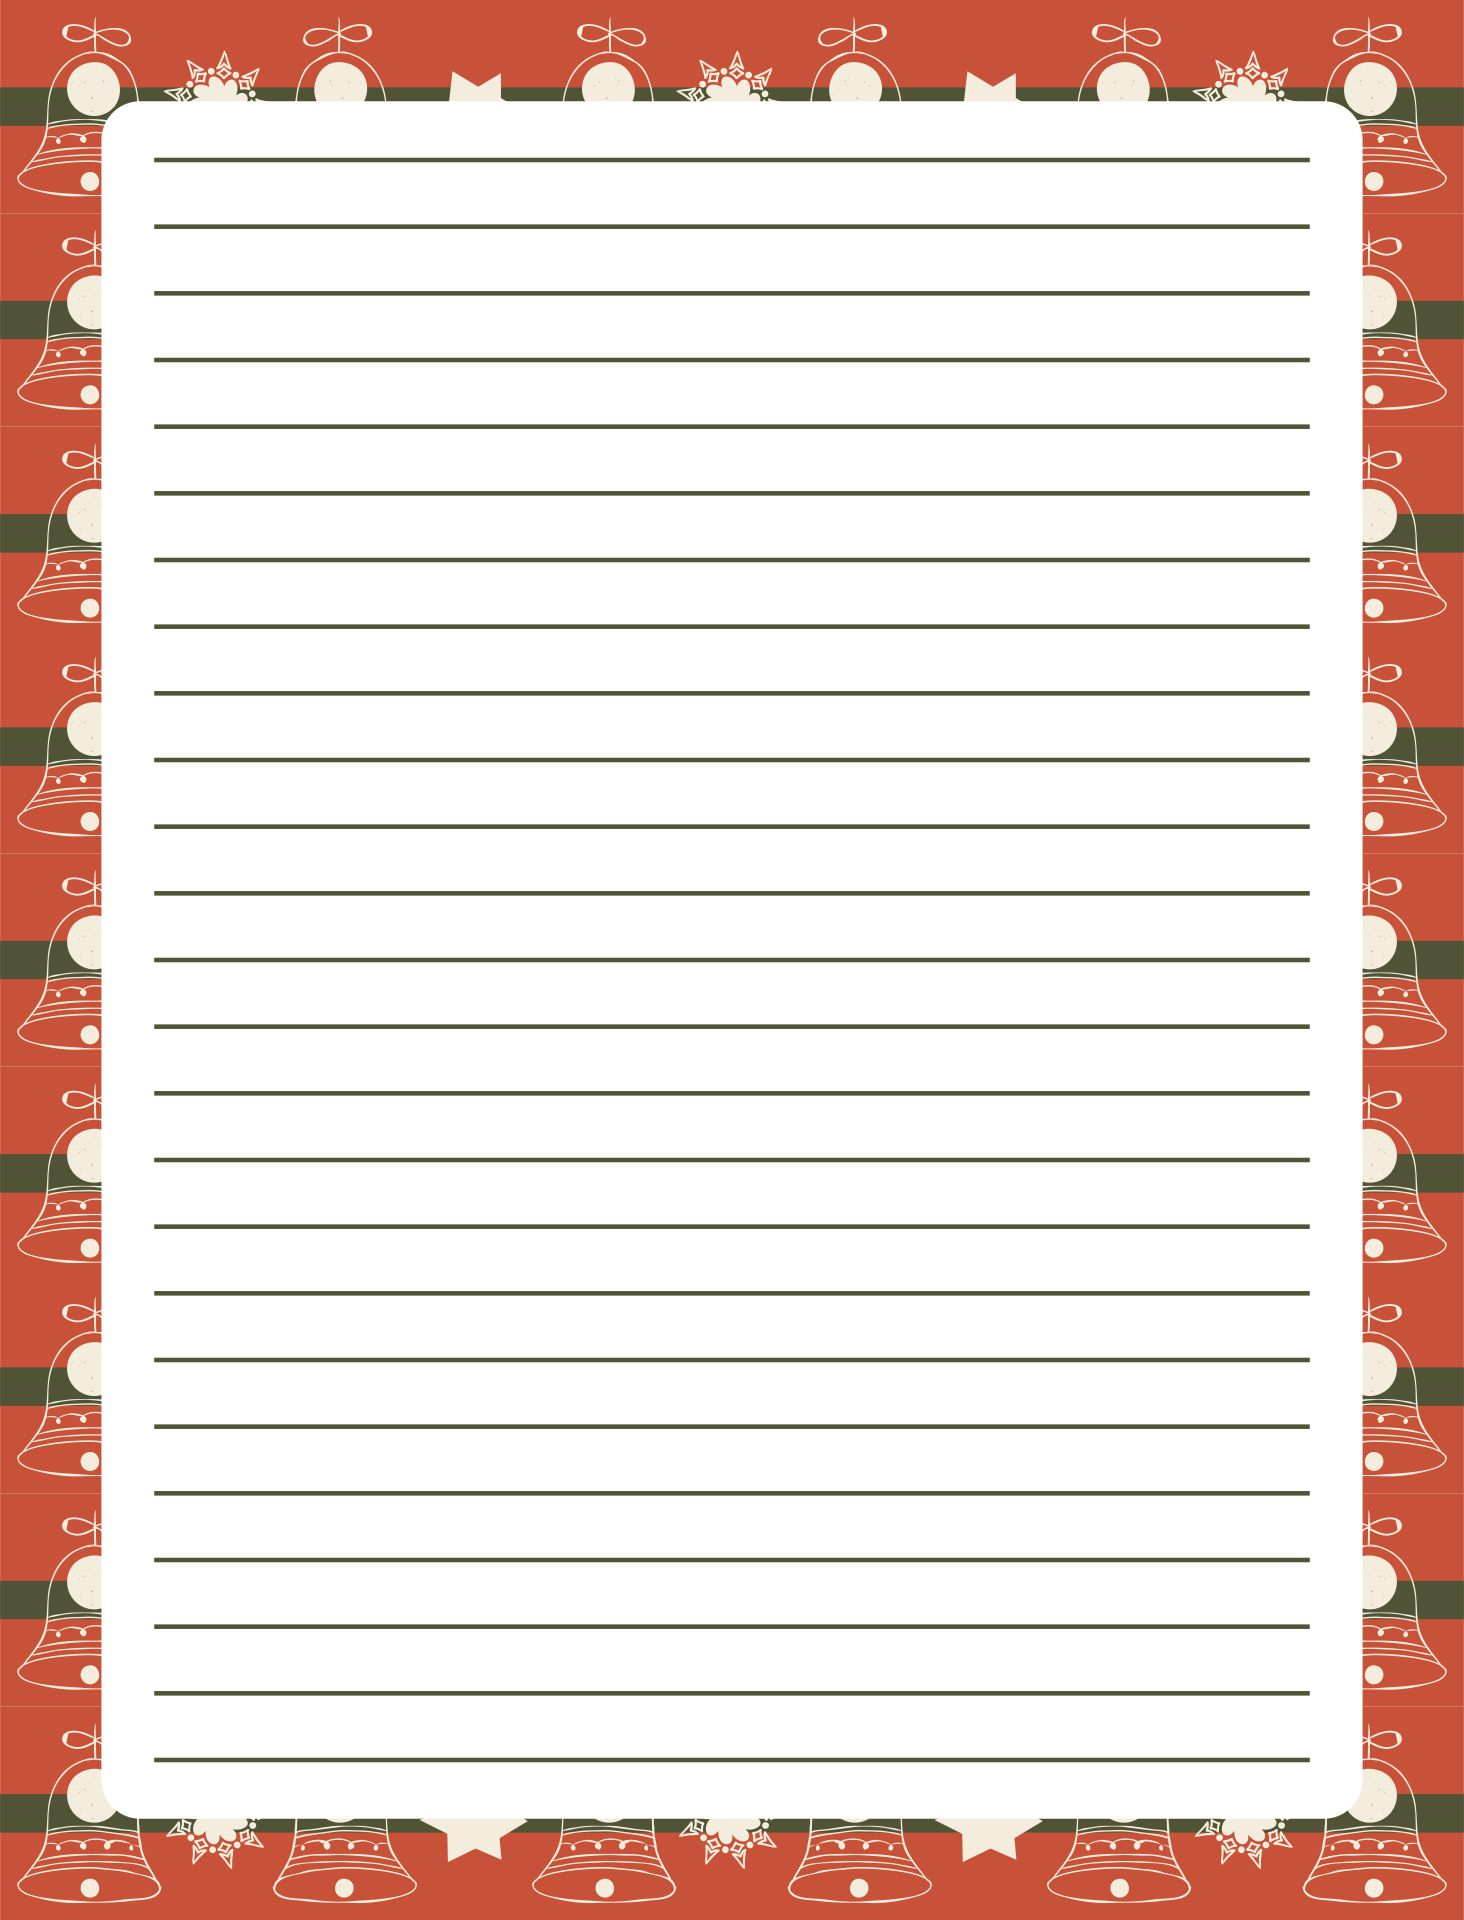 Christmas Writing Paper with Border